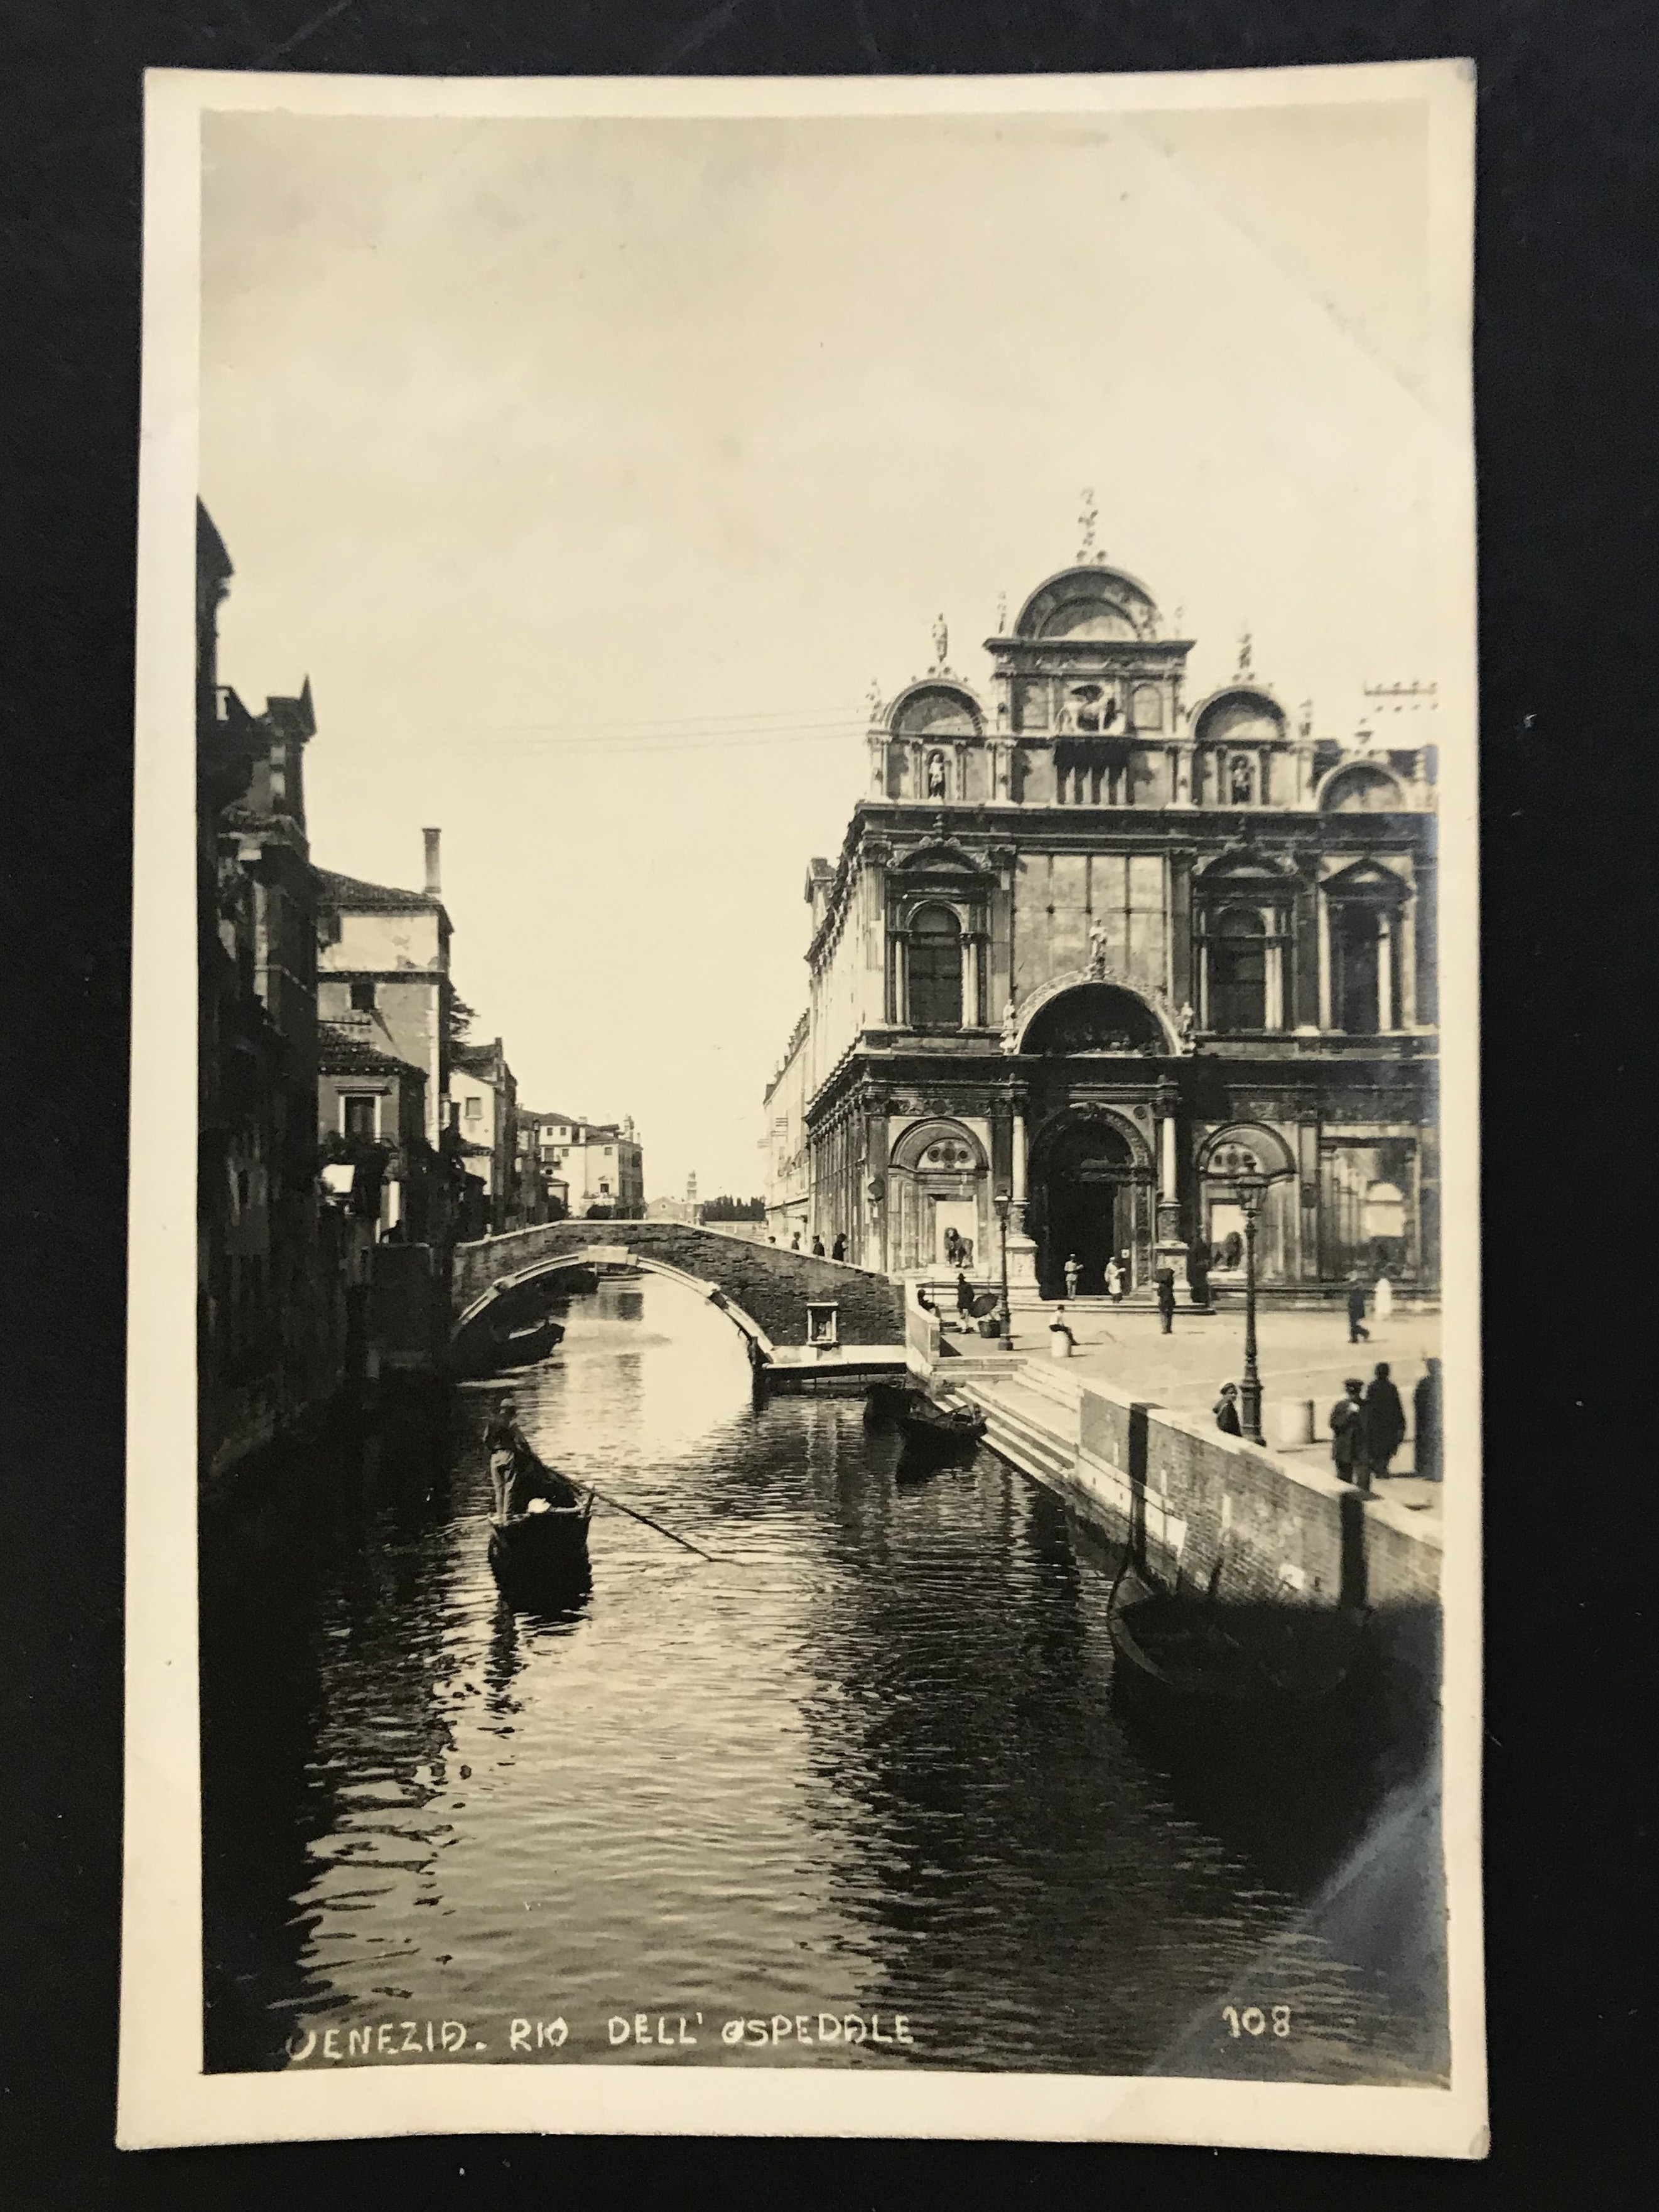 SELECTION OF VENICE RELATED POSTCARDS - Image 28 of 53